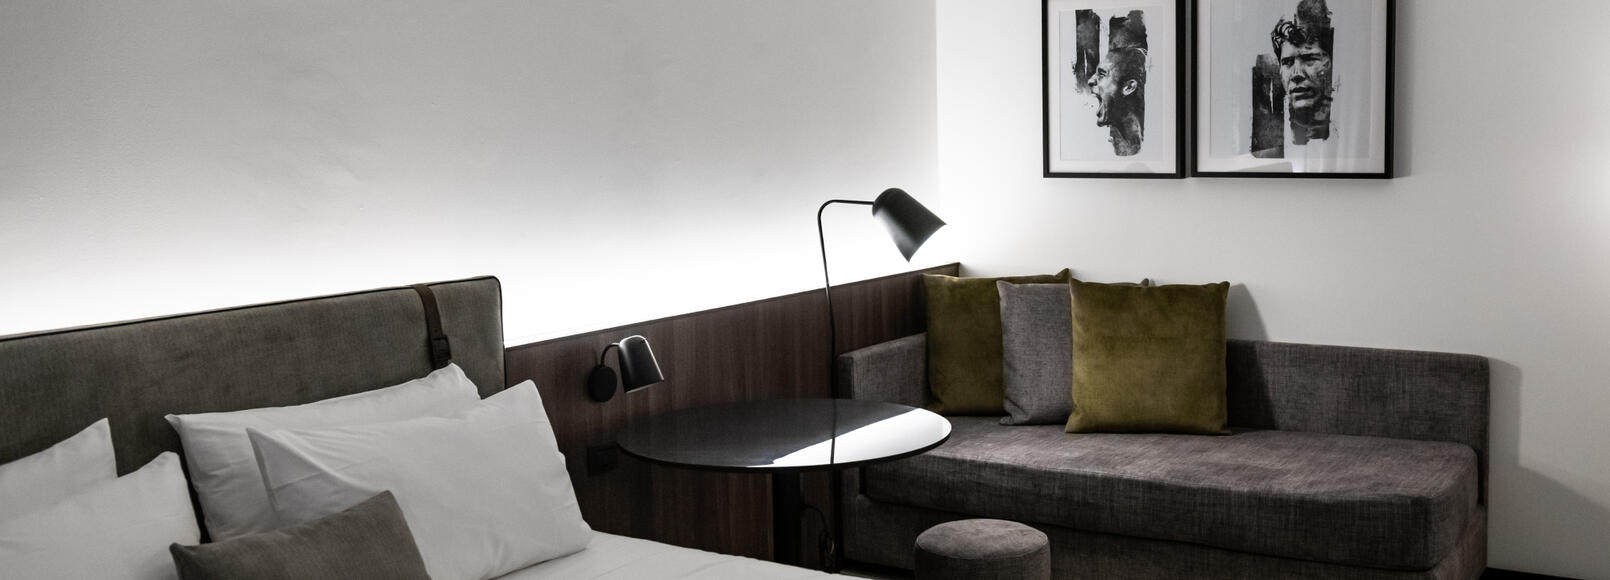 jhotel en hotel-in-turin-for-round-of-16-of-italian-cup-juve-udinese 012